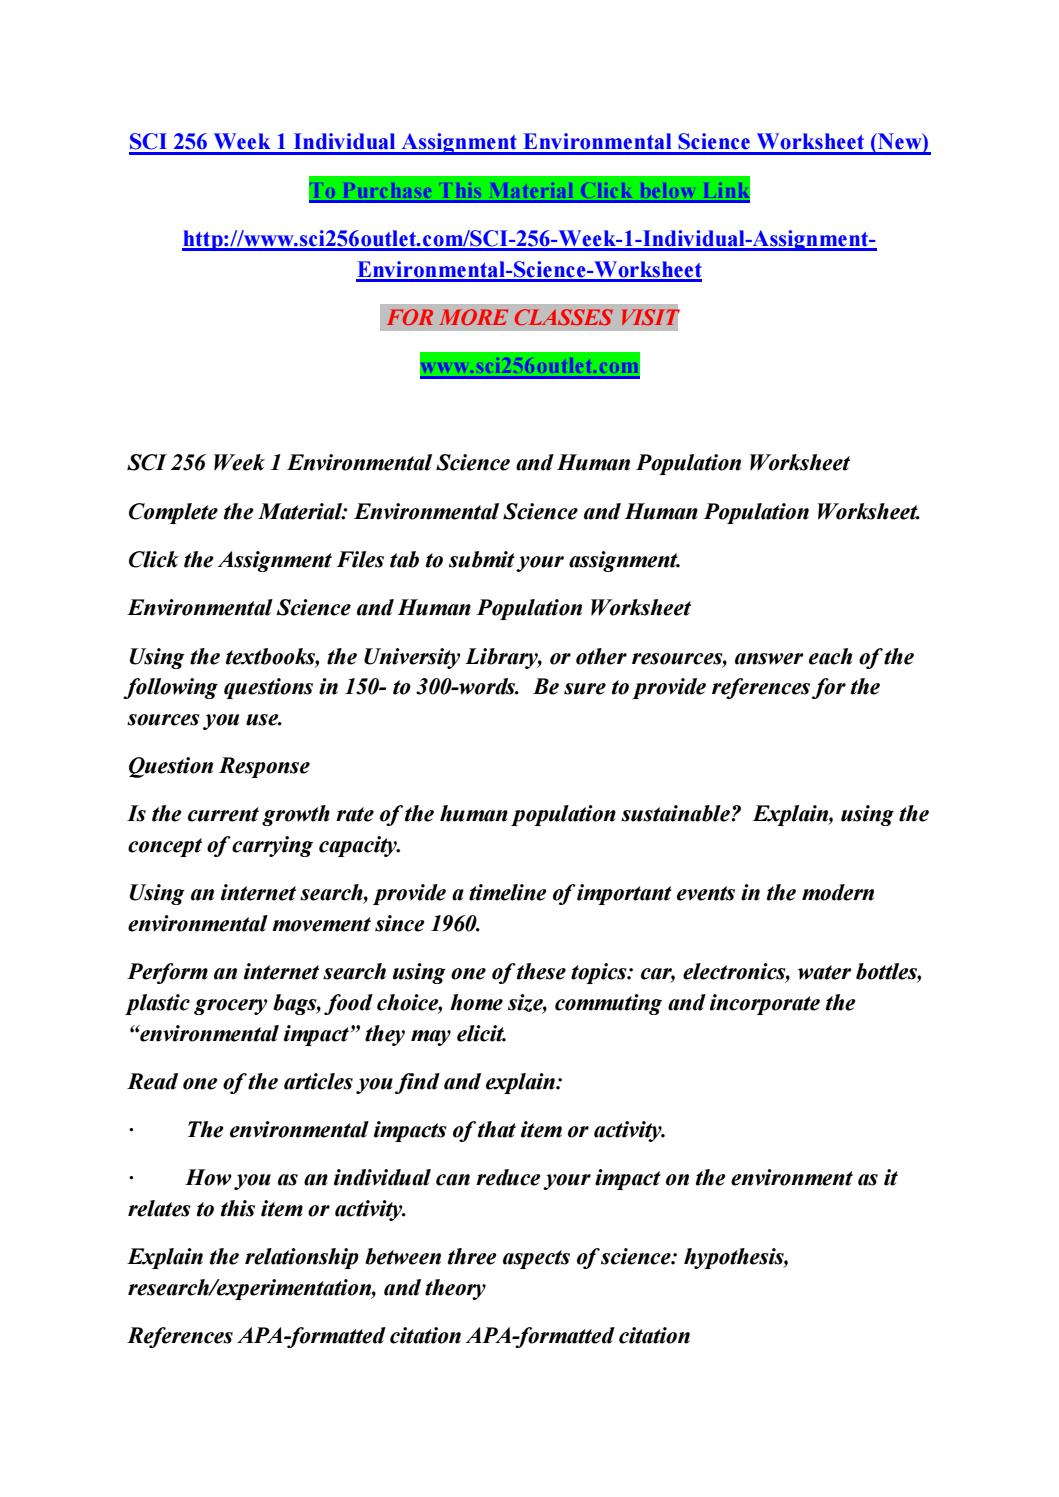 Sci 256 week 1 individual assignment environmental science – Human Population Worksheet